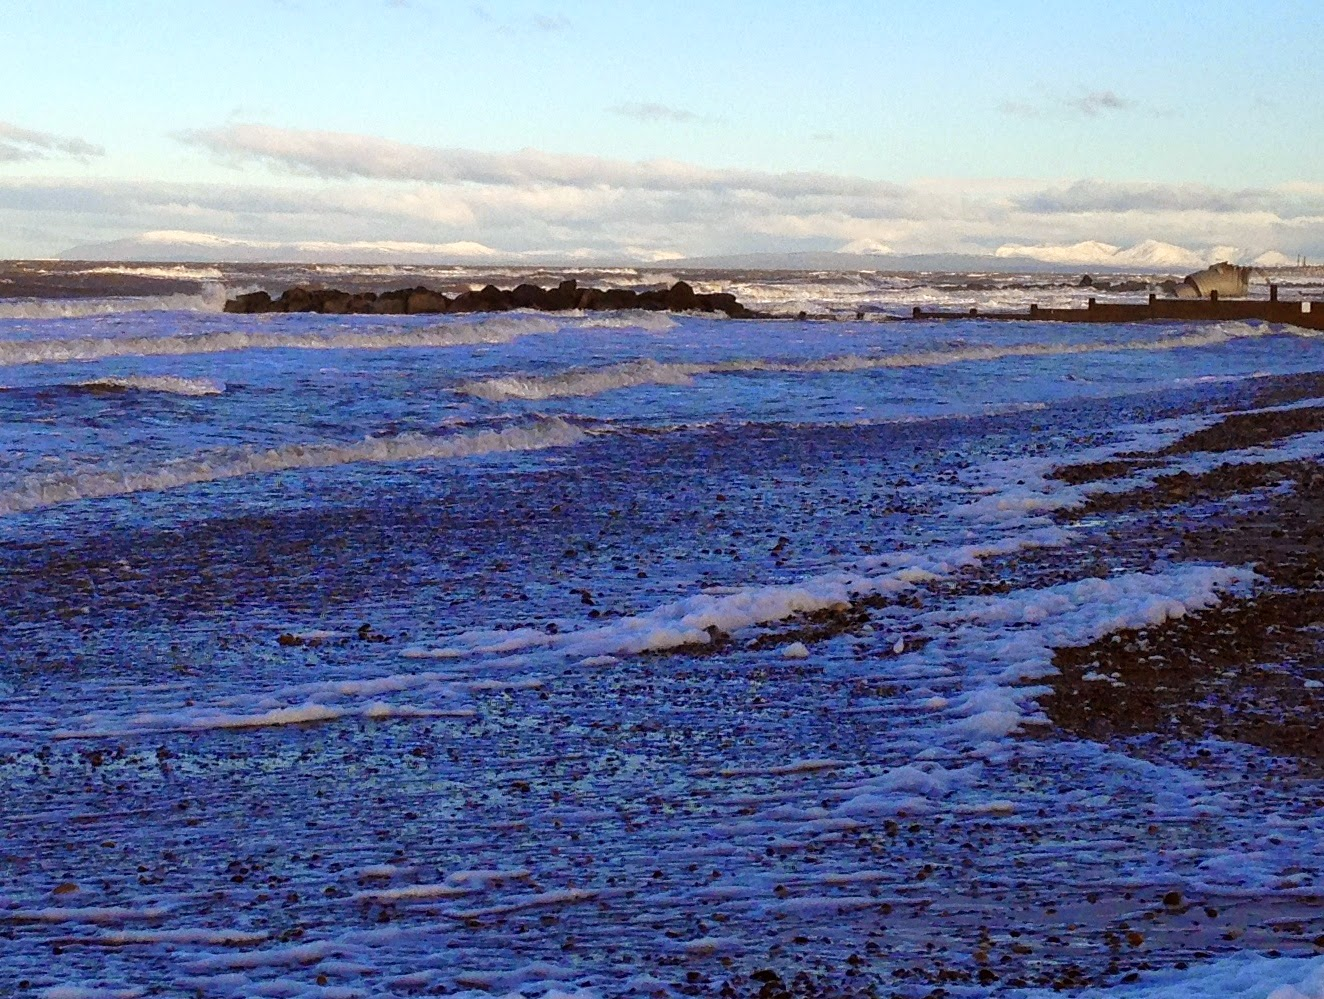 Blackpool Beach, Morecambe Bay, Snowy mountains, sunrise, lake district, Golden Mile